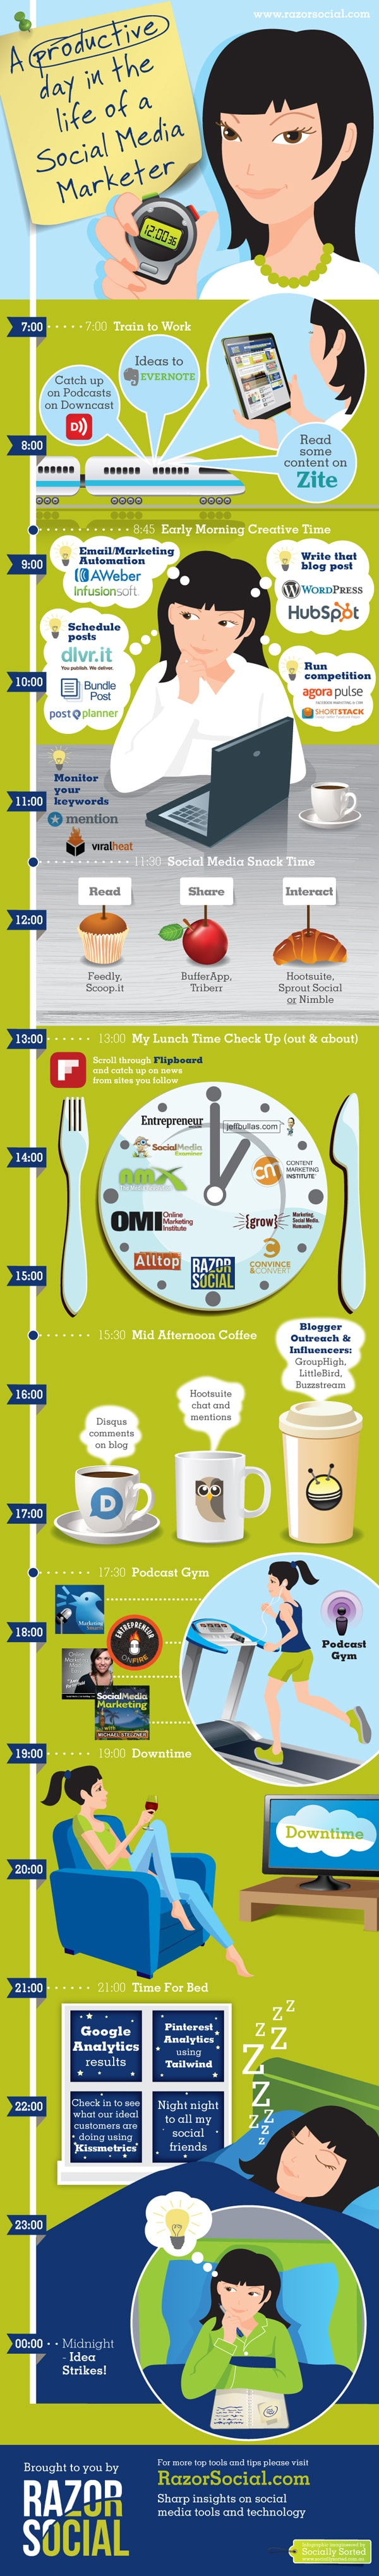 ADayInTheLife_Infographic_2_600_MED